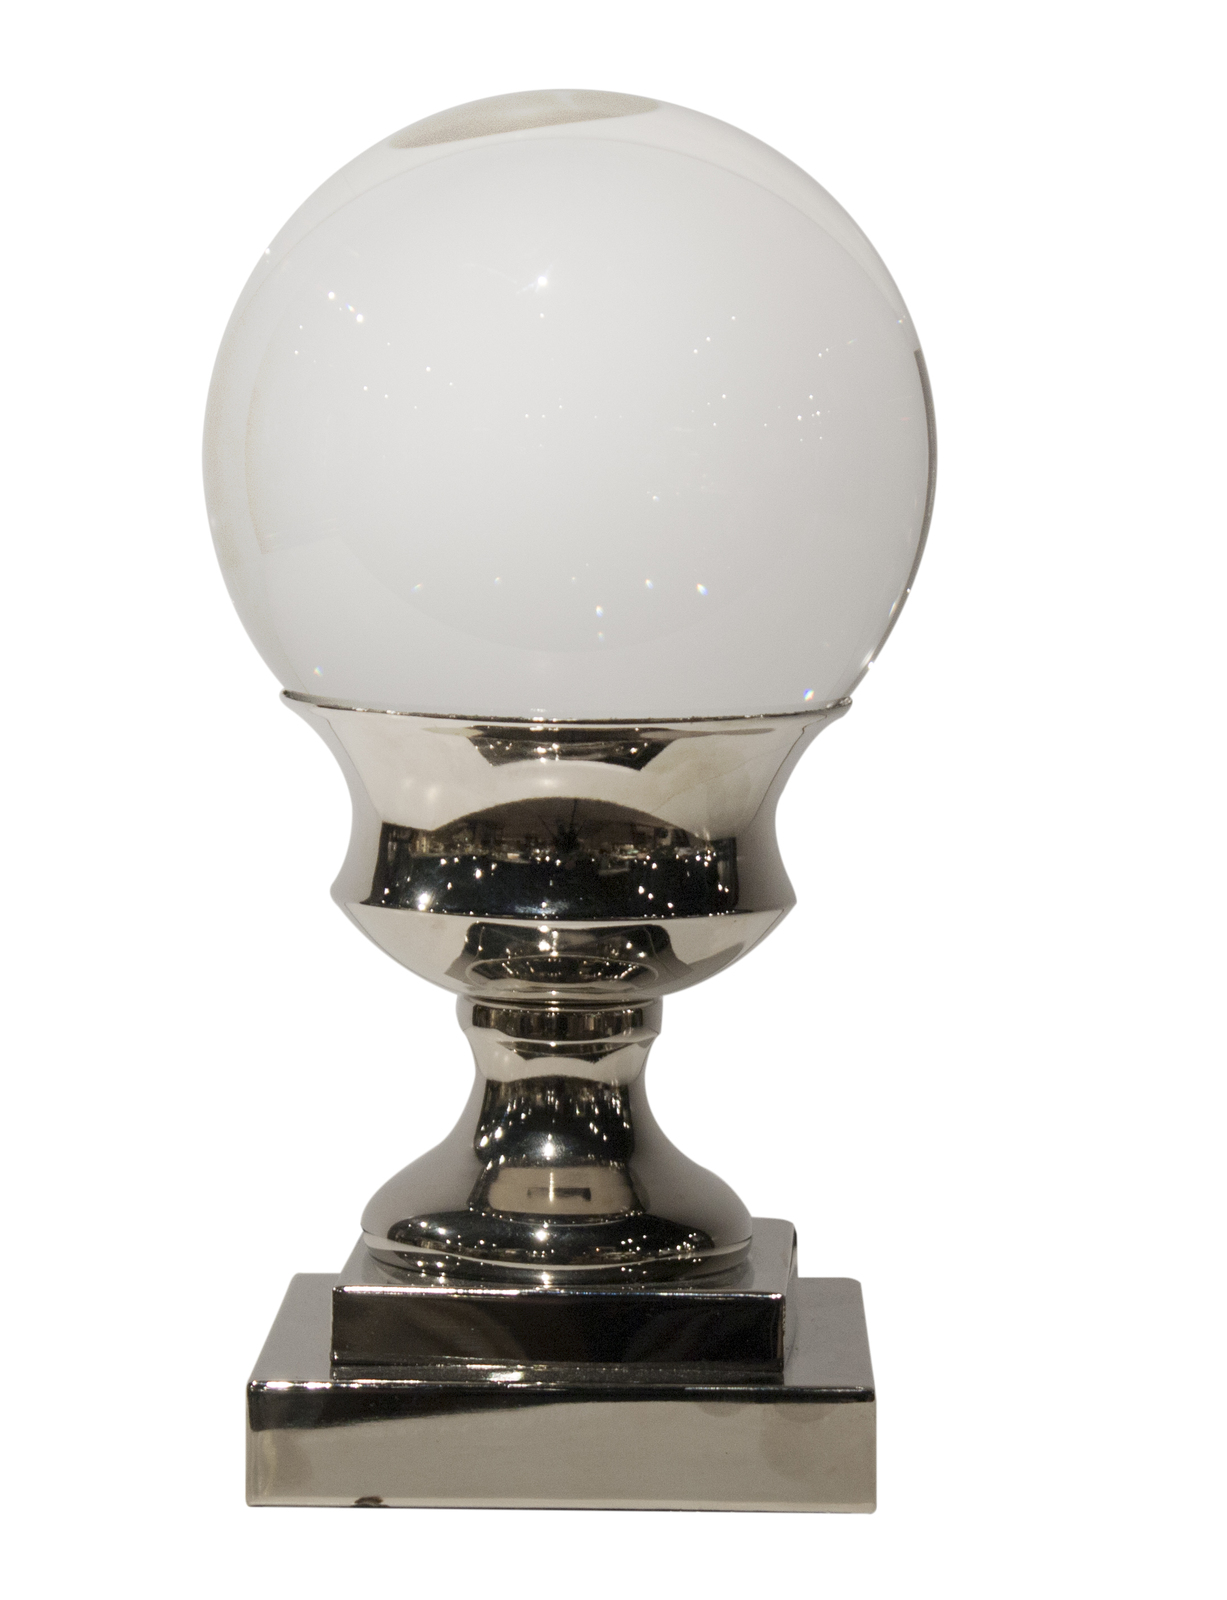 Set of Two Crystal Ball with Nickel Pedestals,5.5''d x 11'' tall.